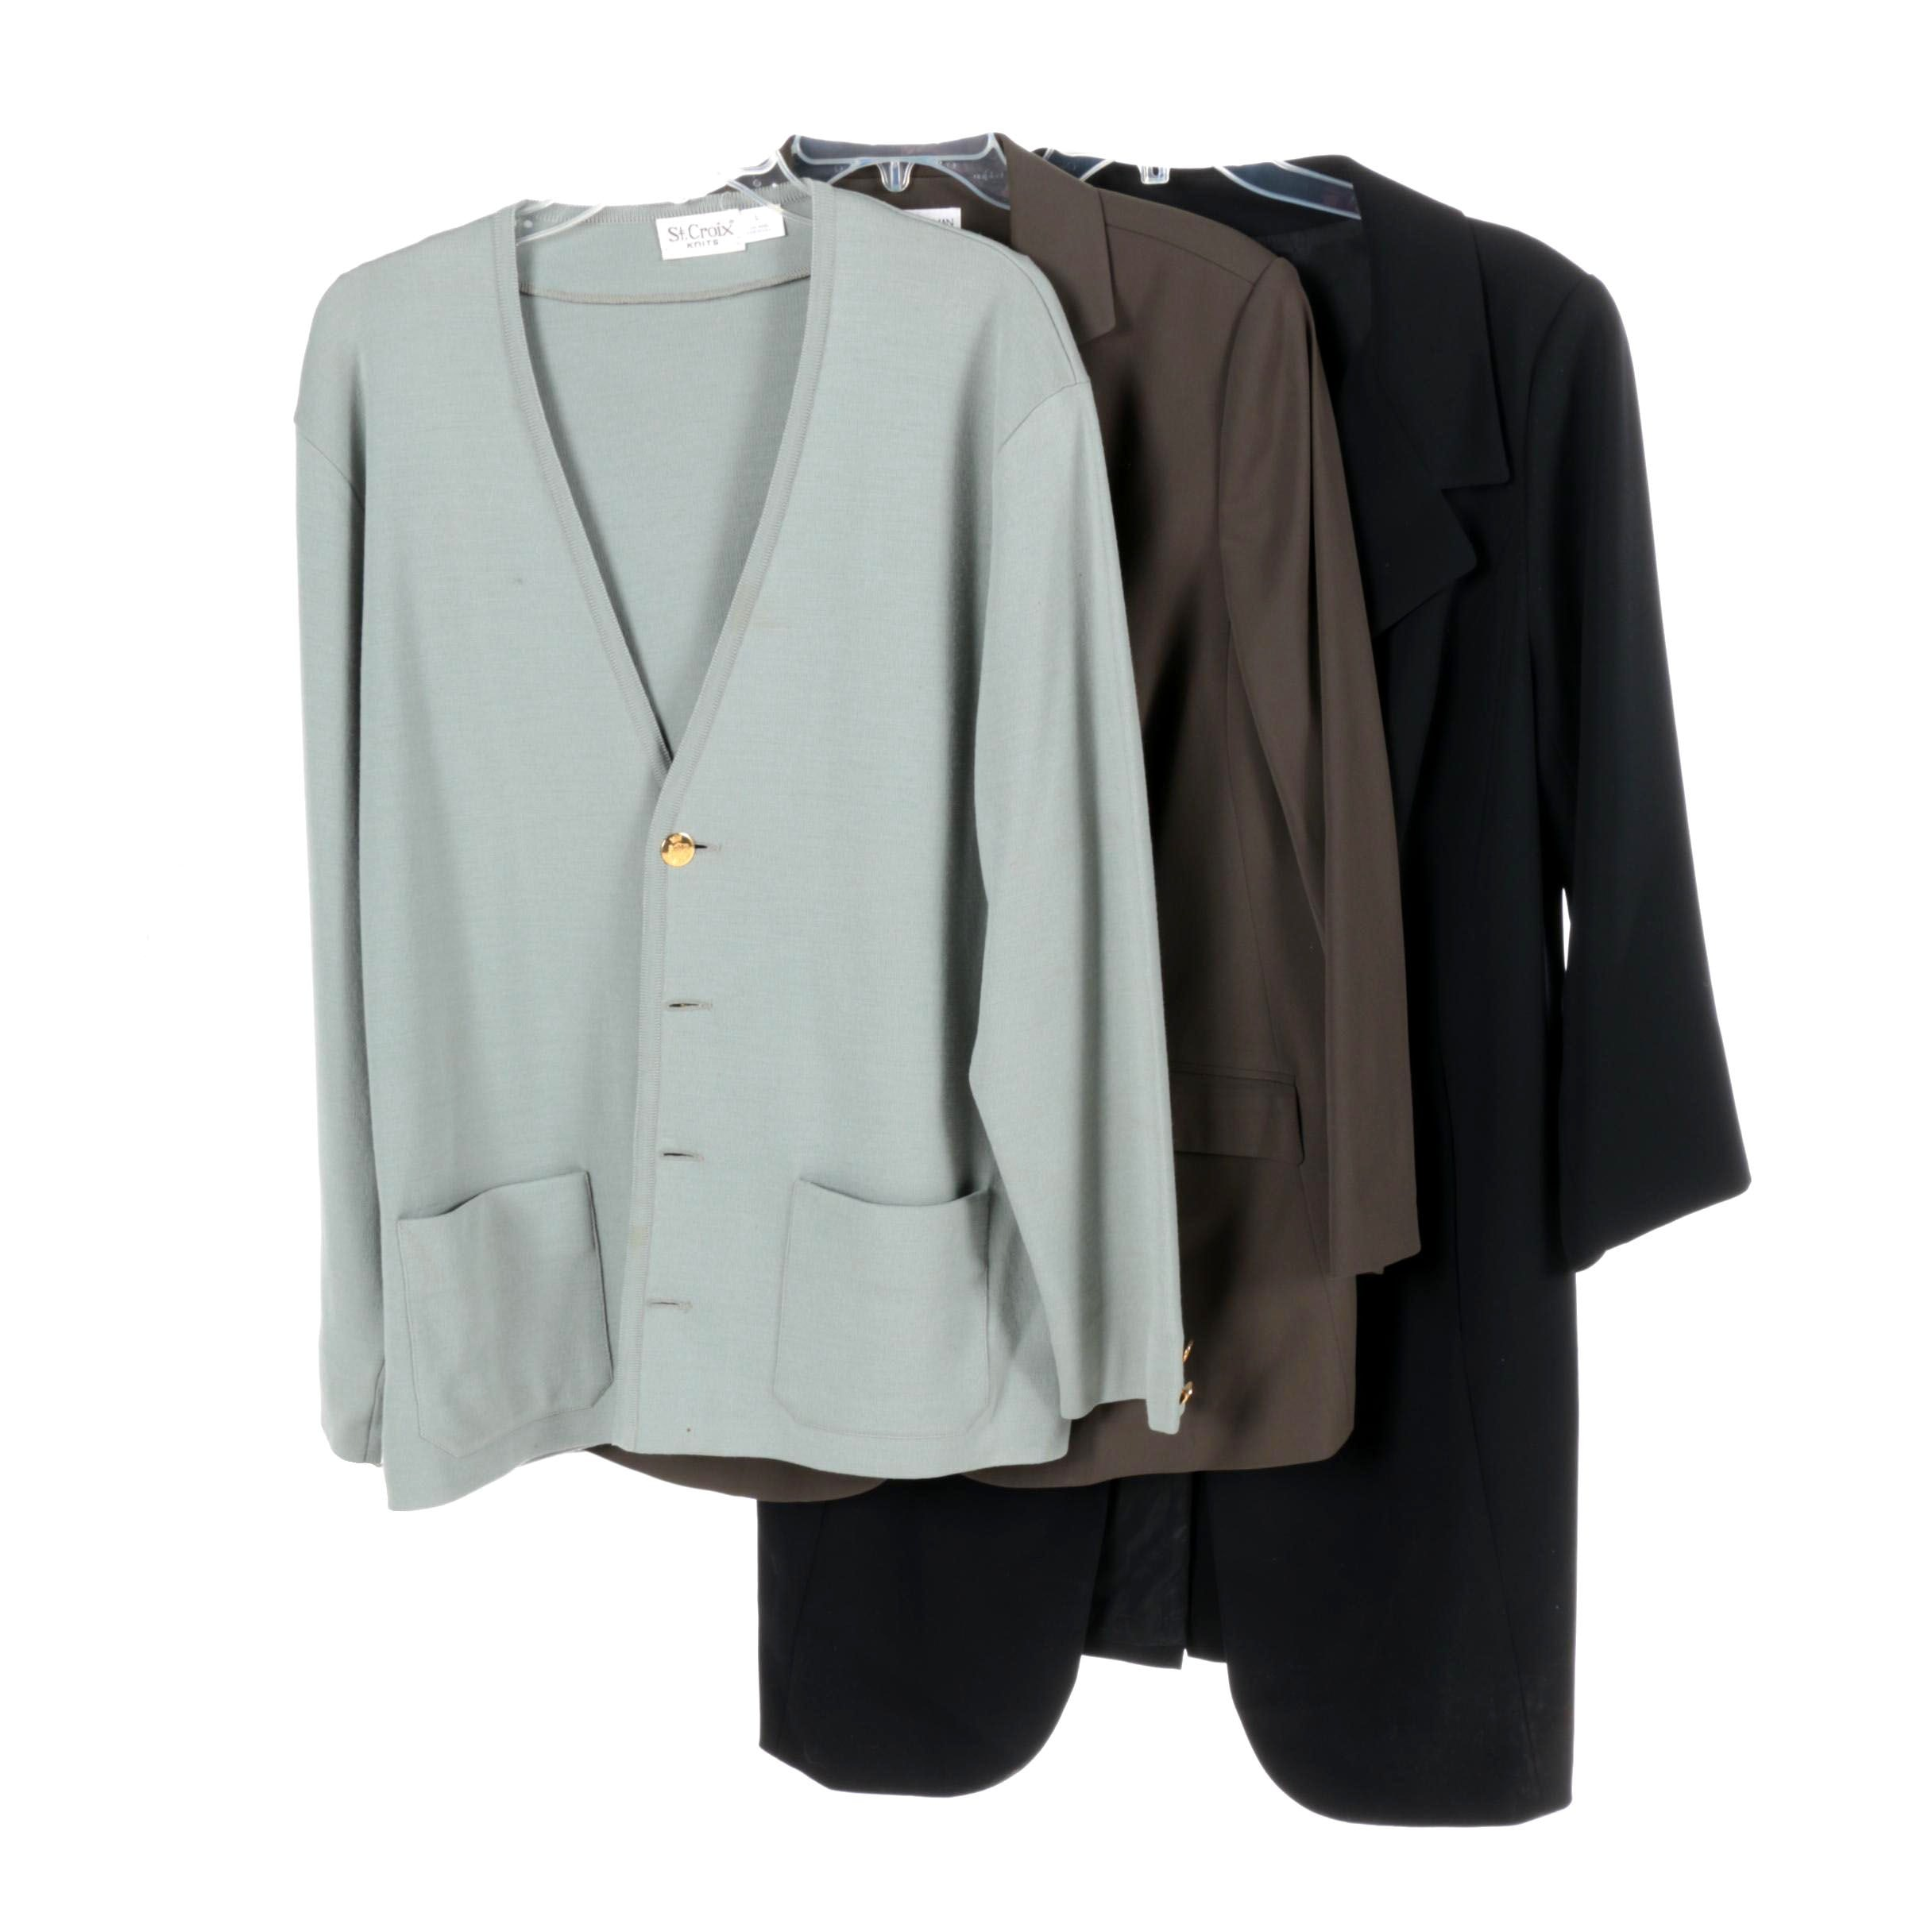 Women's Suit Jackets Including Kate Hill